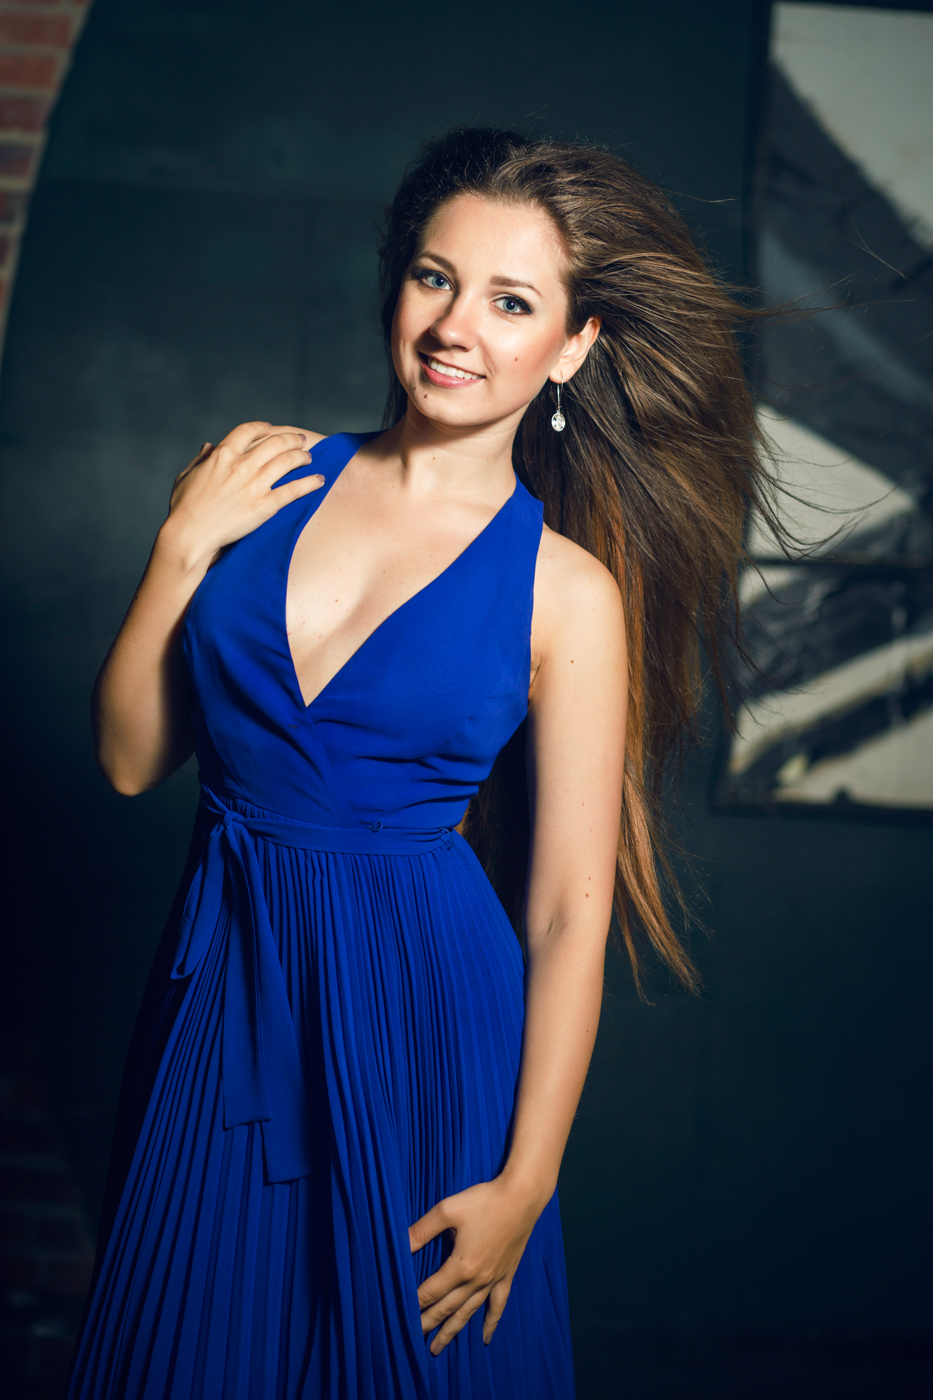 Photo-Shoot-for-a-local-band-Ksenia-Pro-Photography-2